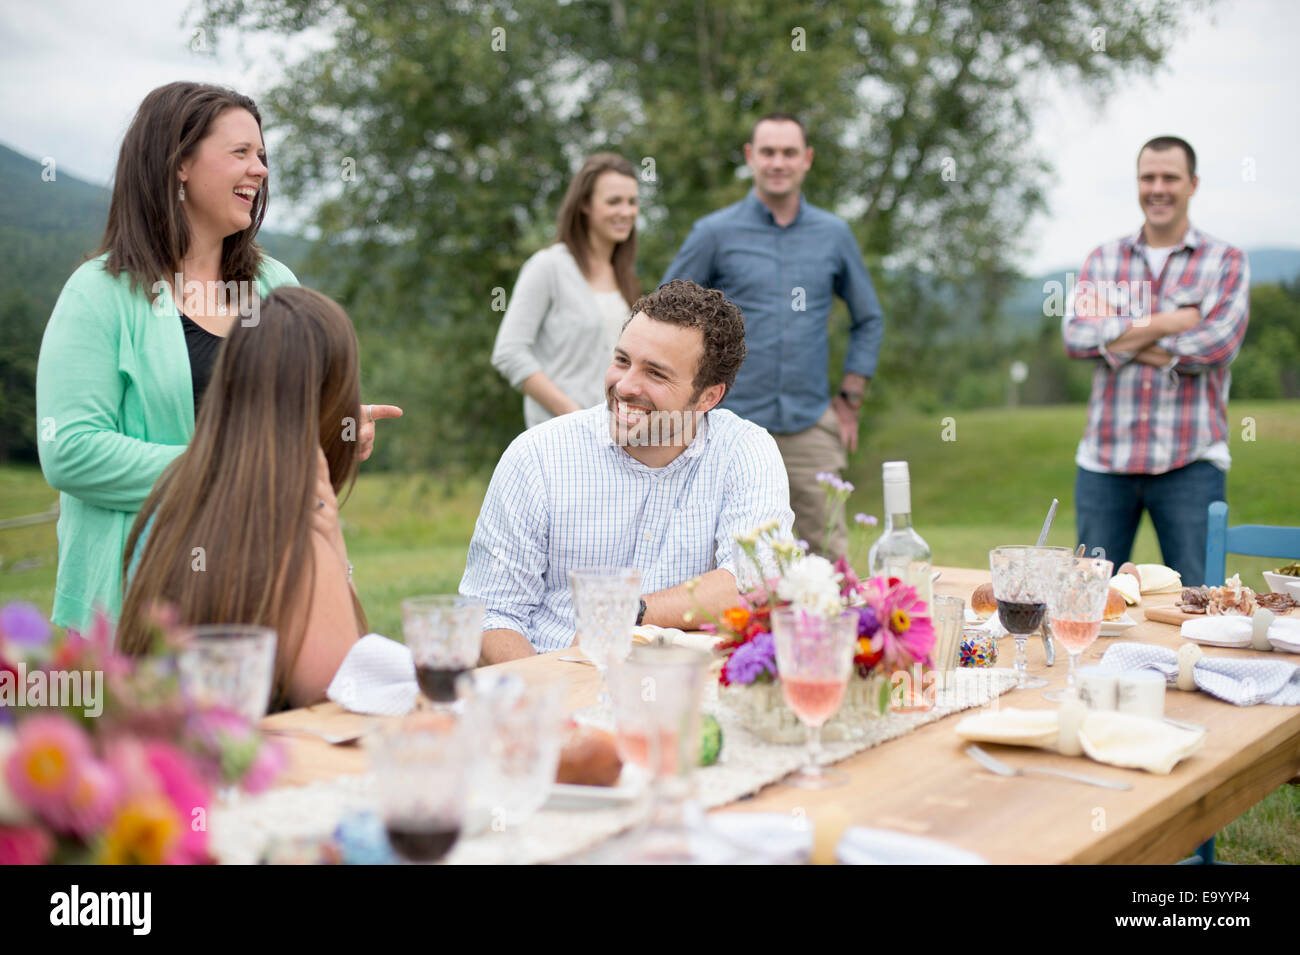 Family and friends gathered around, talking, at the end of a meal, outdoors - Stock Image